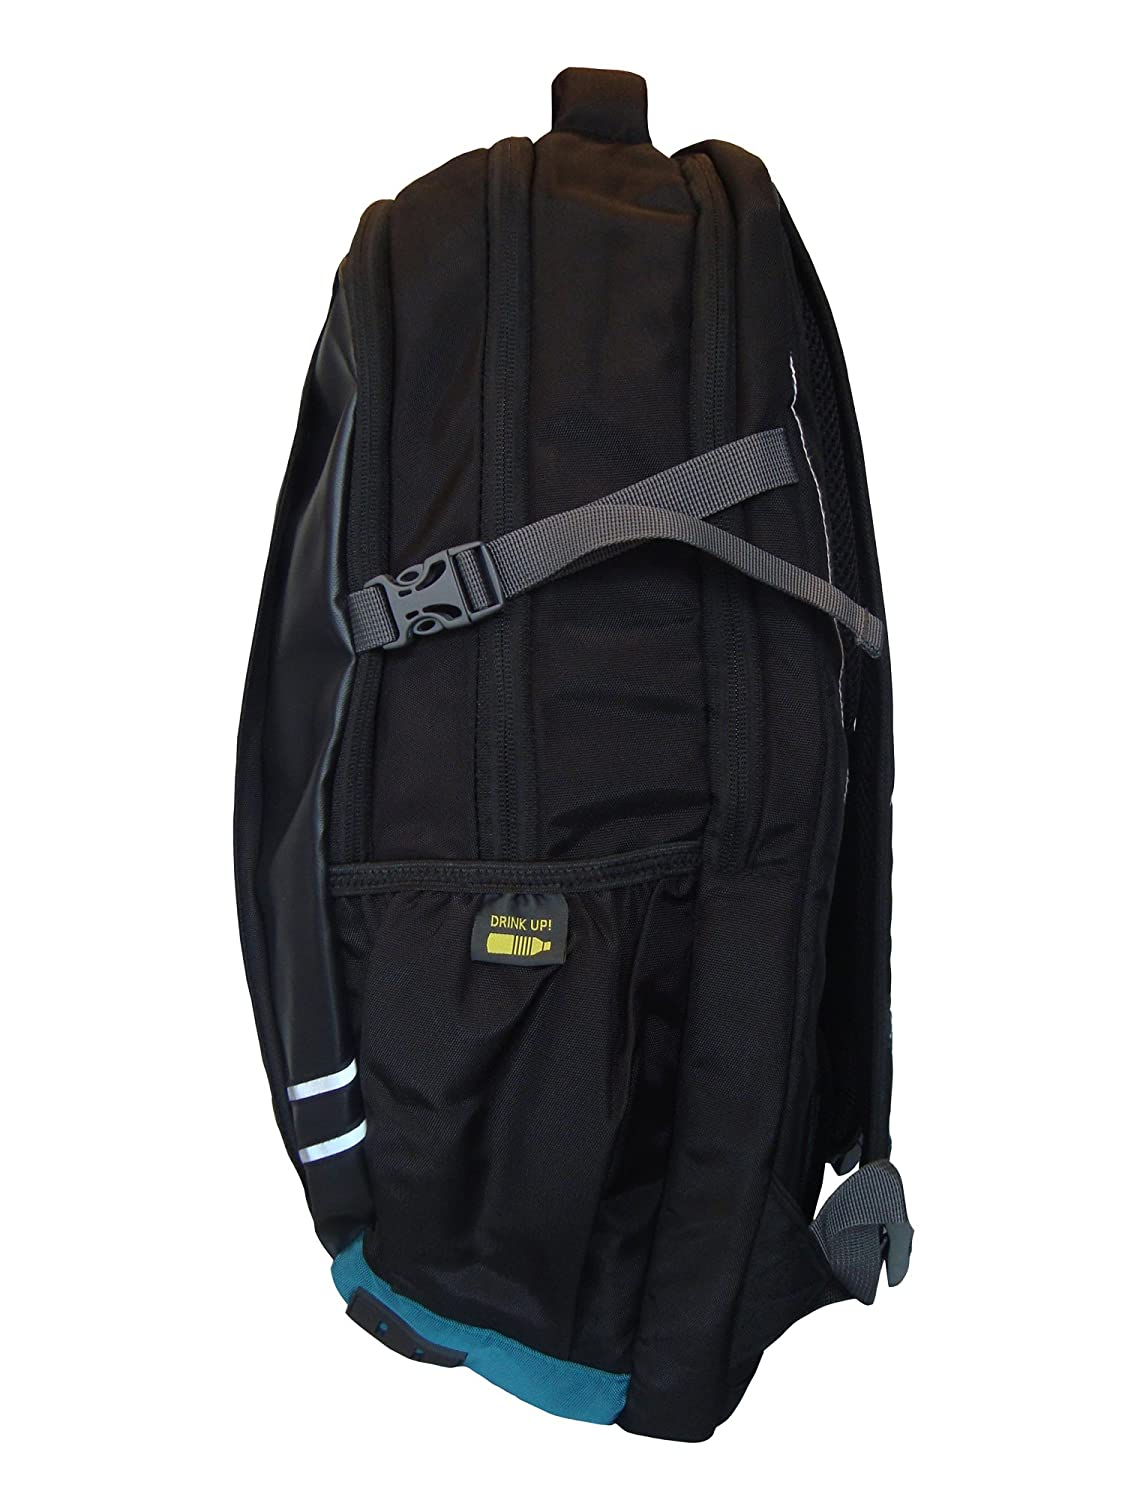 c8f212b17 Skybags Lunar 02 Black Laptop Backpack | The Shred Centre